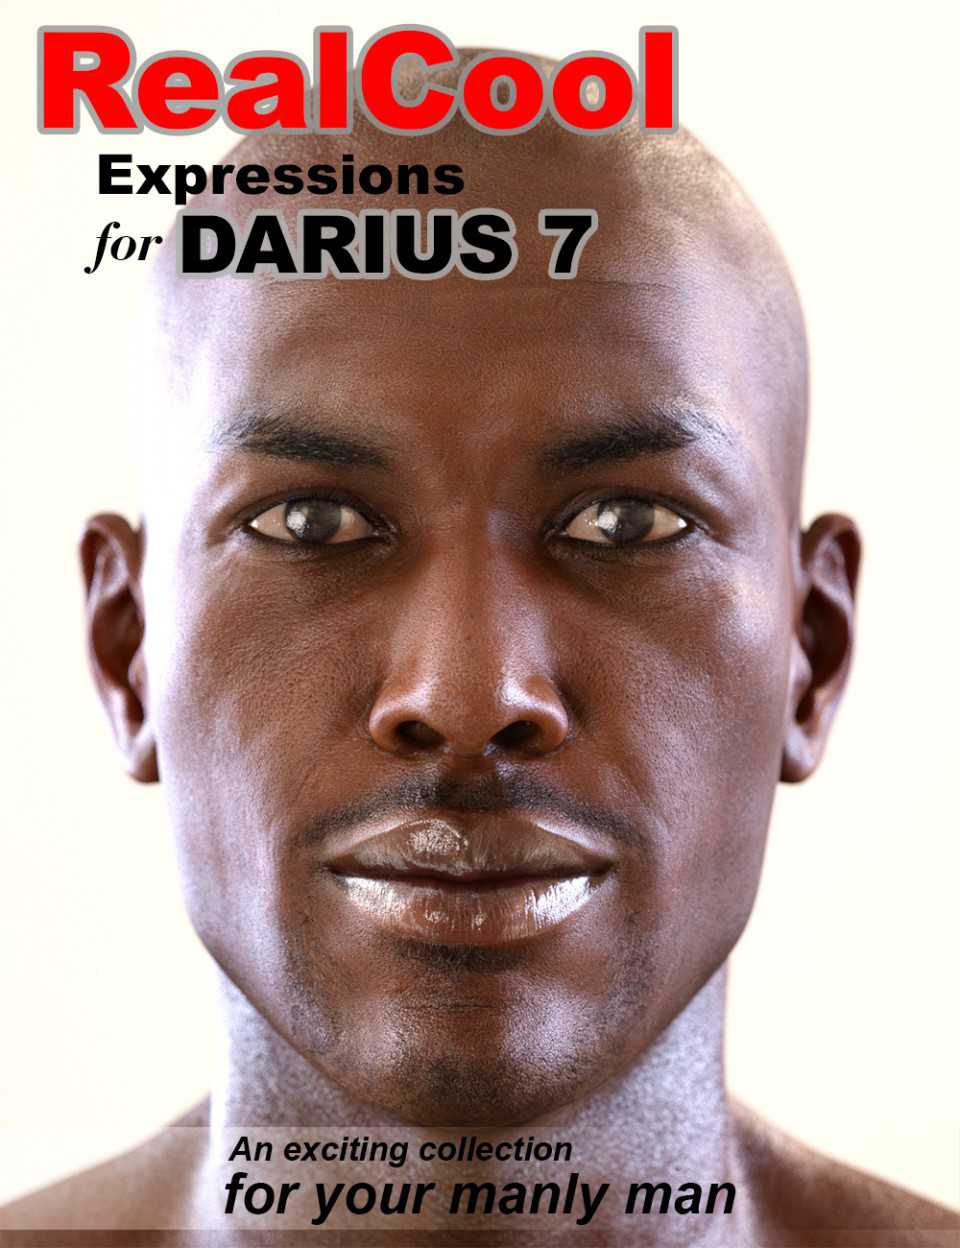 RealCool Expressions for Darius 7